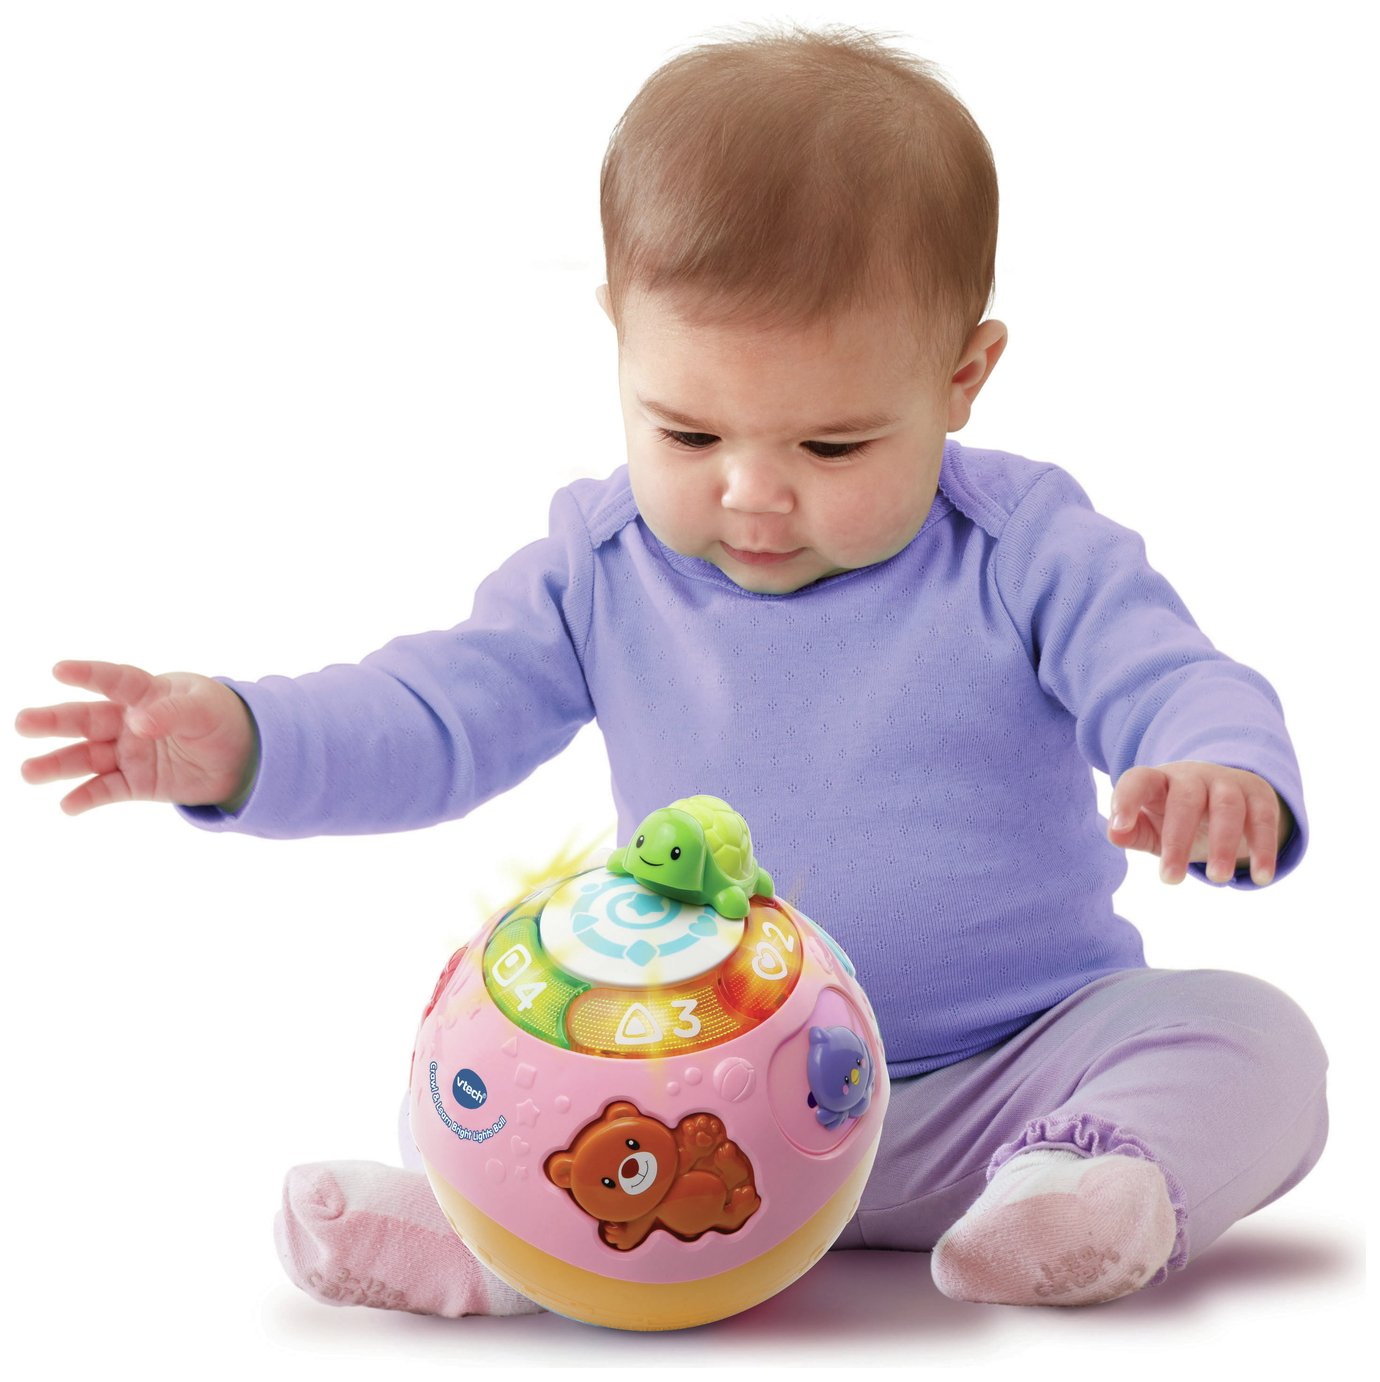 VTech Crawl and Learn Ball - Pink from VTech